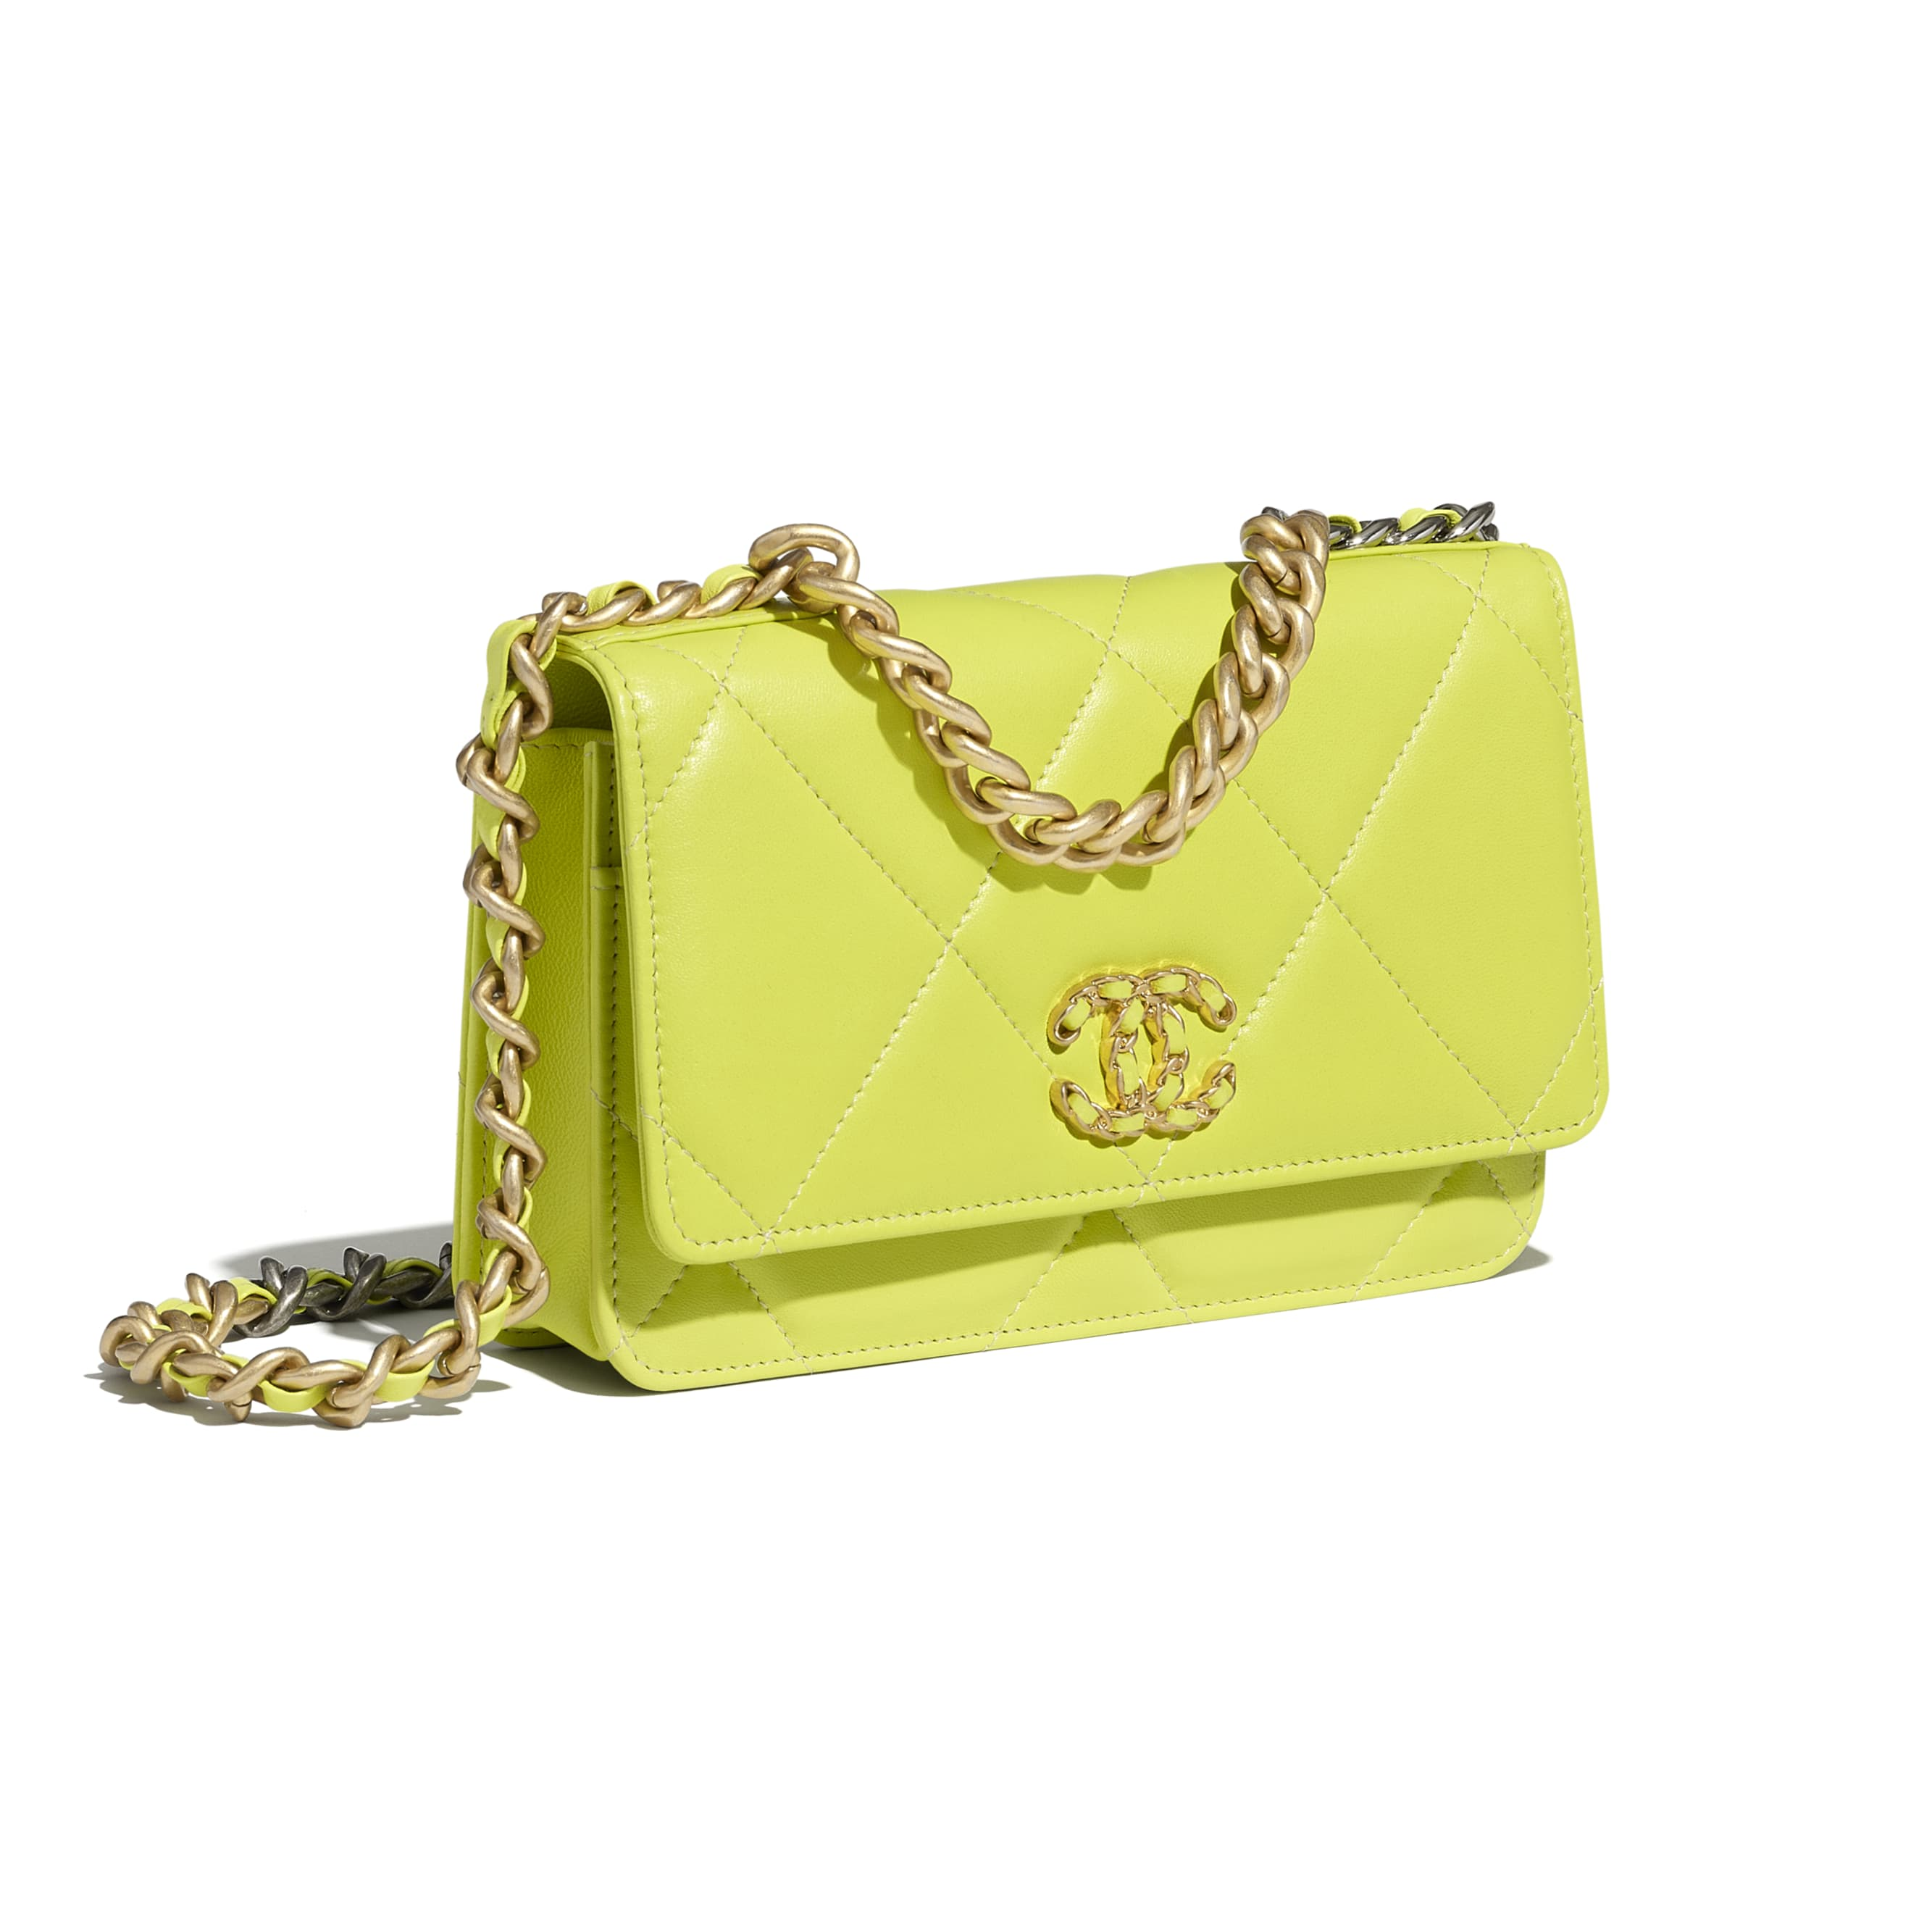 CHANEL 19 Wallet on Chain - Neon Yellow - Shiny Lambskin, Gold-Tone, Silver-Tone & Ruthenium-Finish Metal - CHANEL - Extra view - see standard sized version